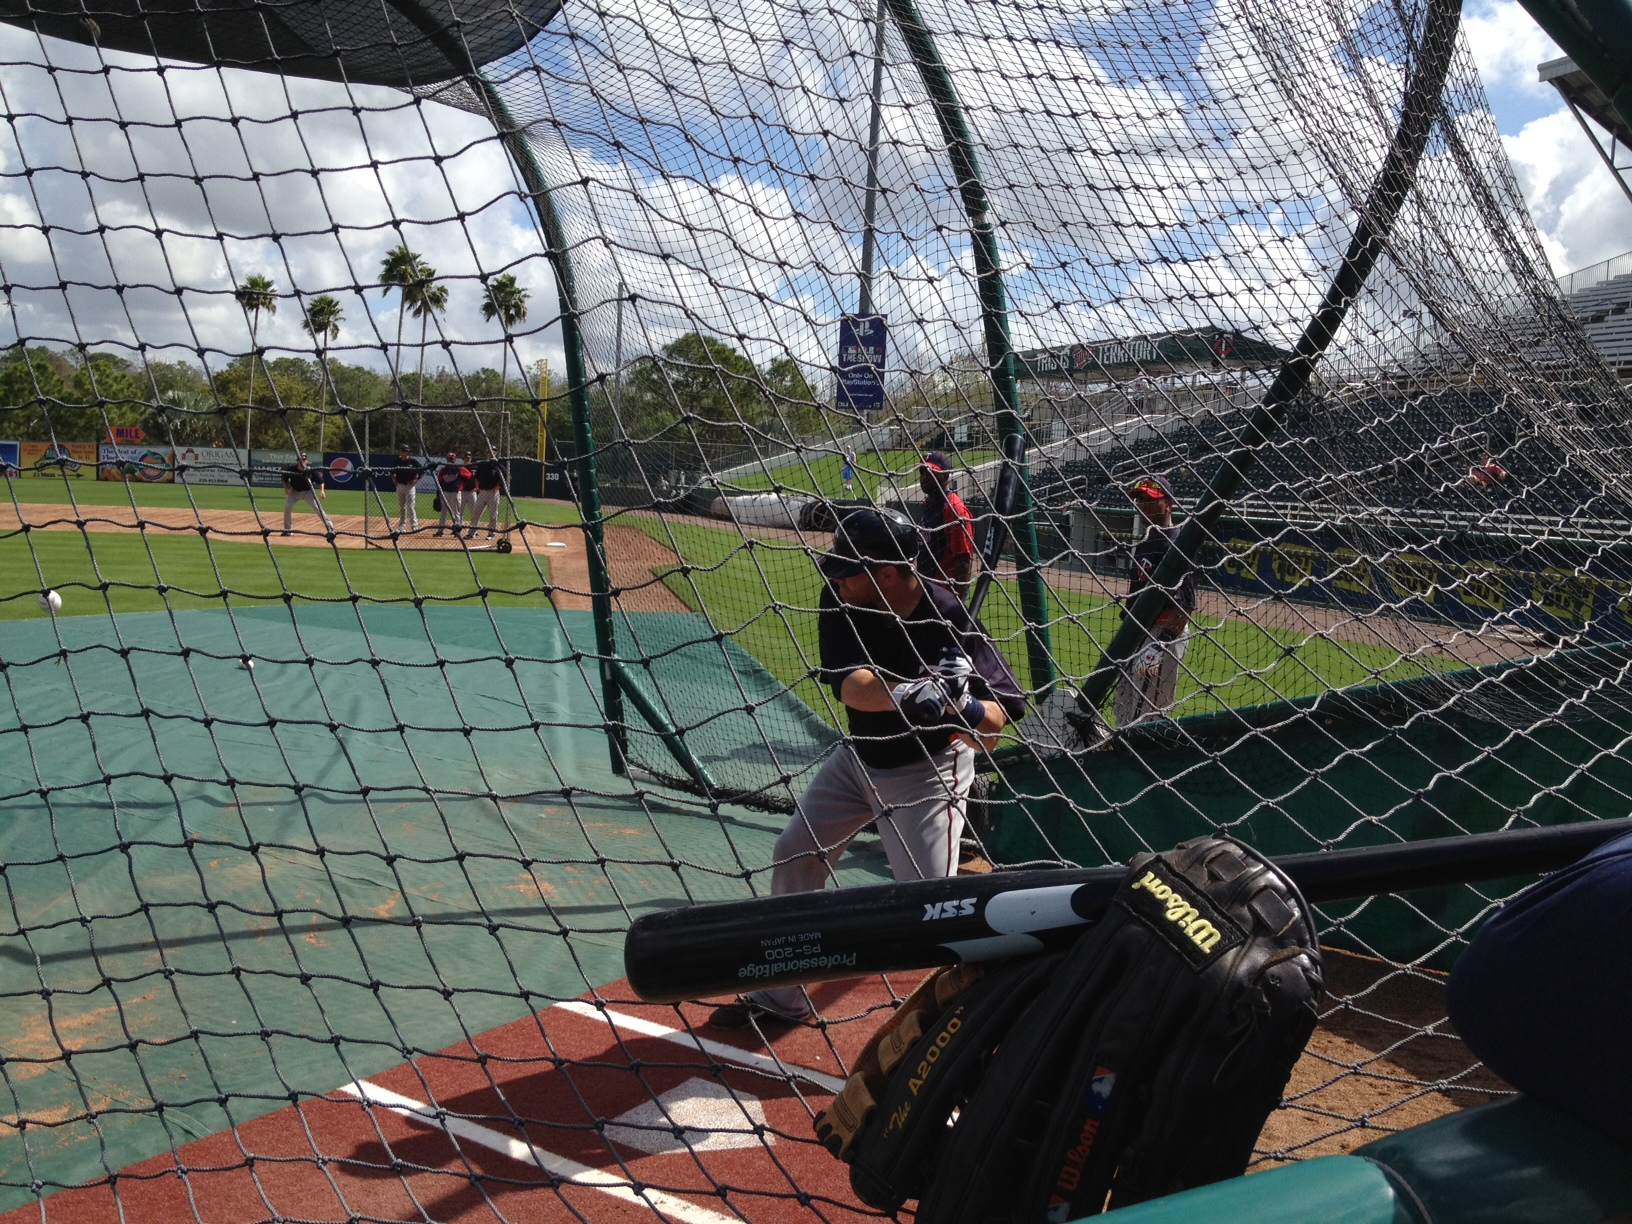 Ryan Doumit taking BP